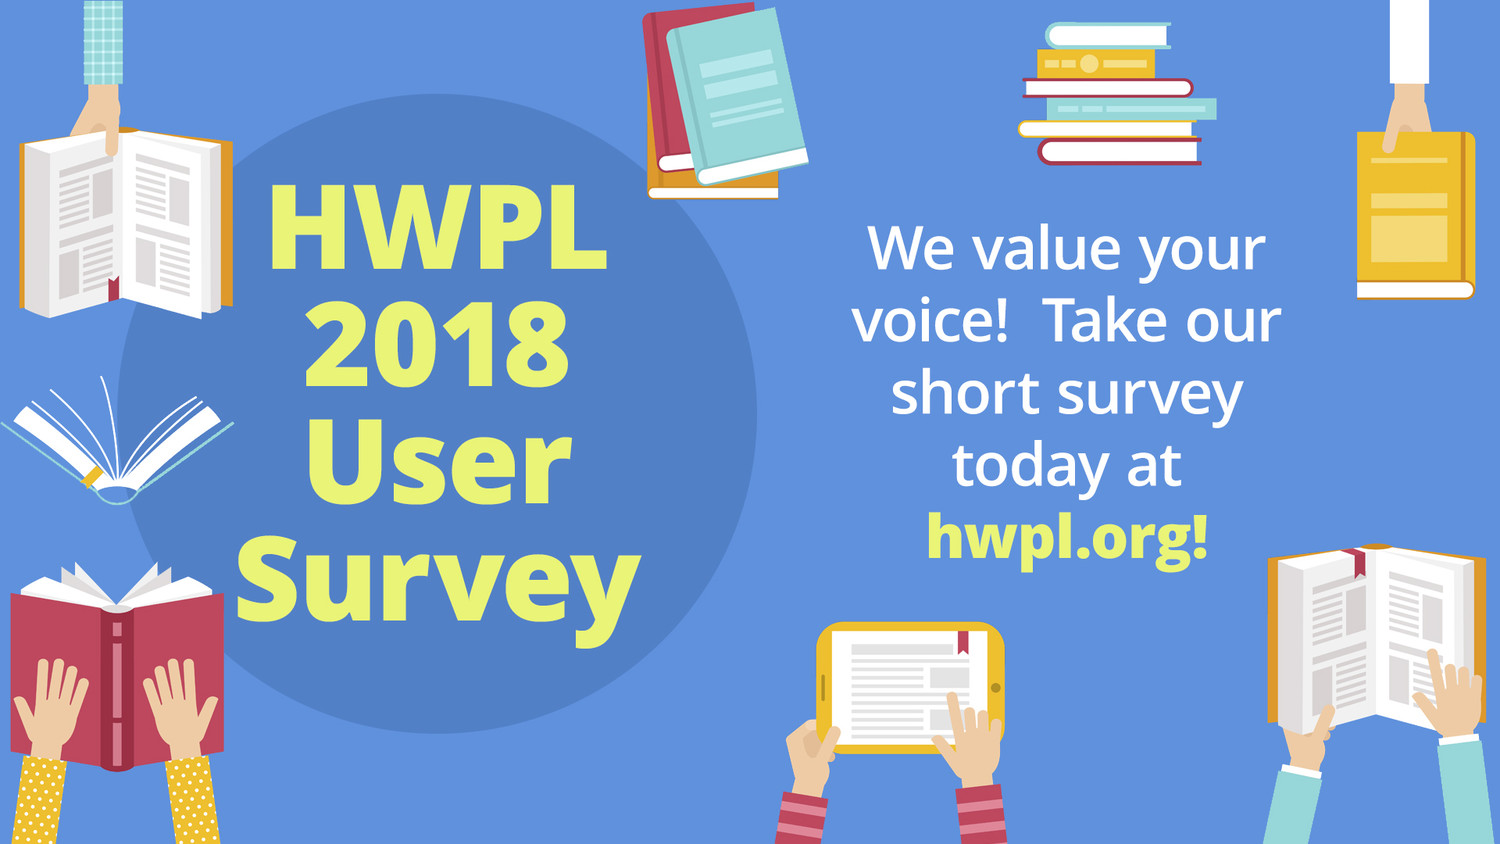 Let your voice be heard and complete the survey by March 2.